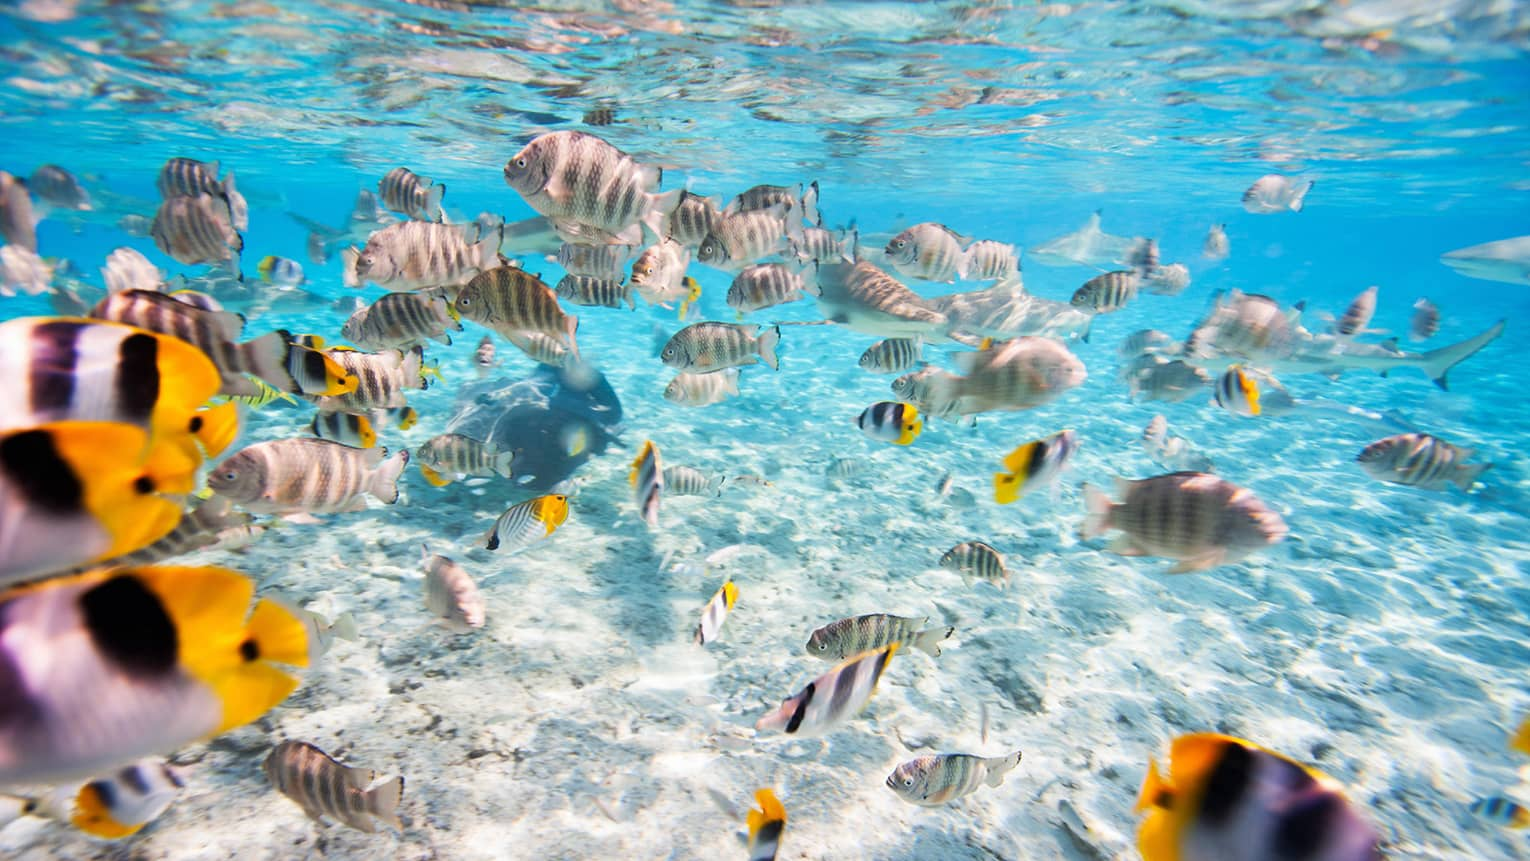 School of tropical yellow and white Butterfly fish swimming in lagoon